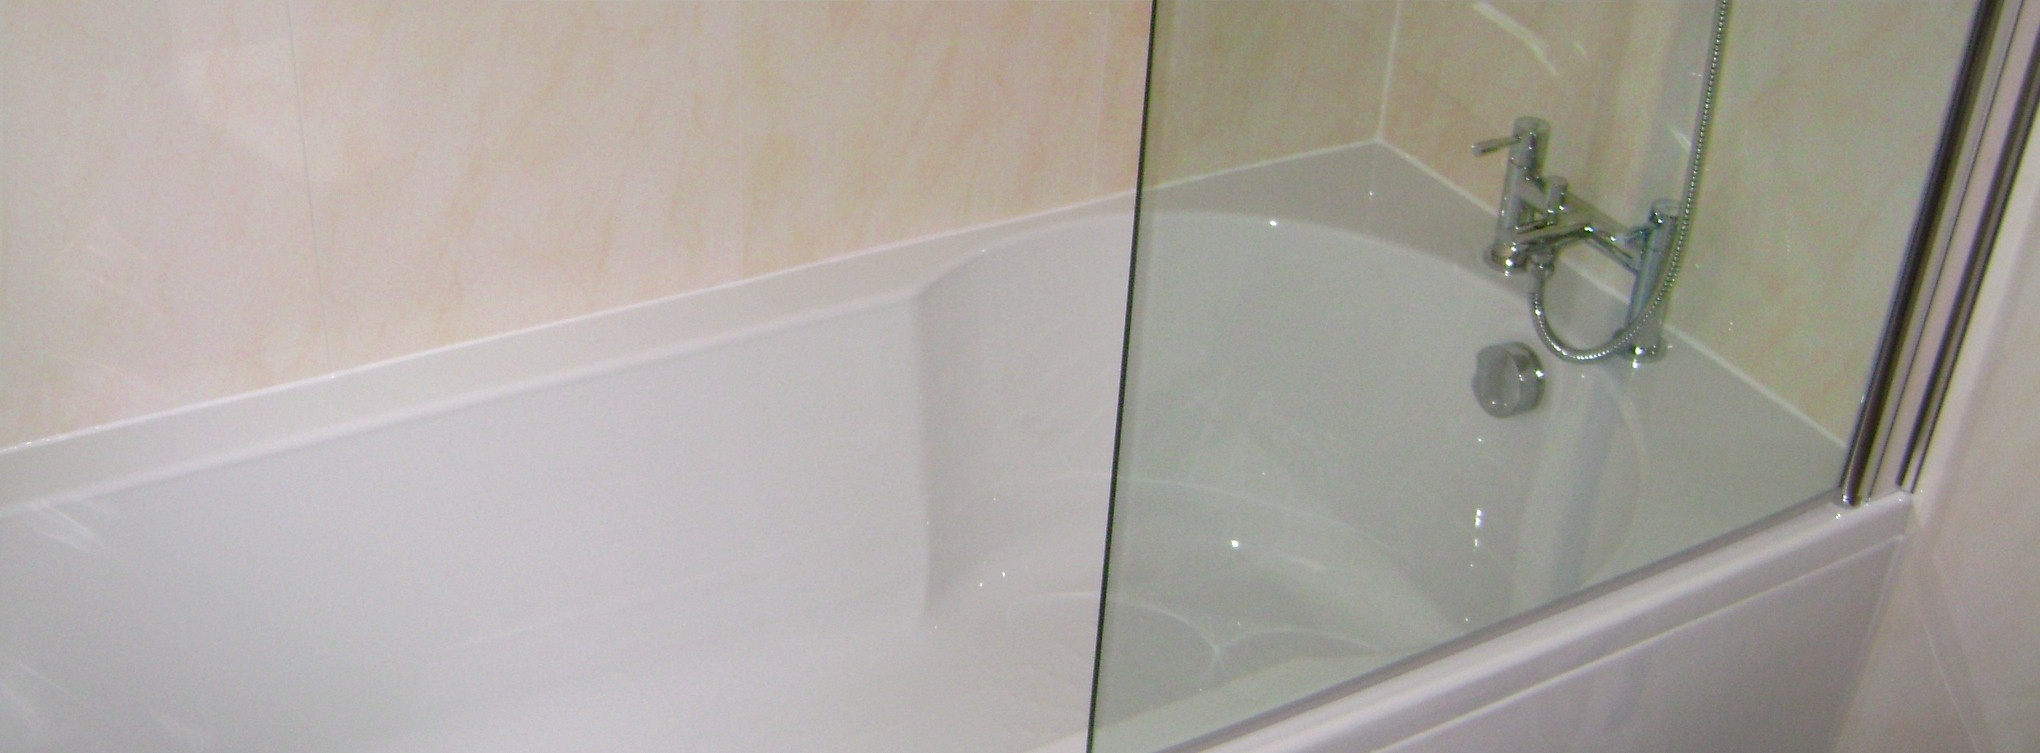 shower wall panel applications - Shower Wall Panel Applications